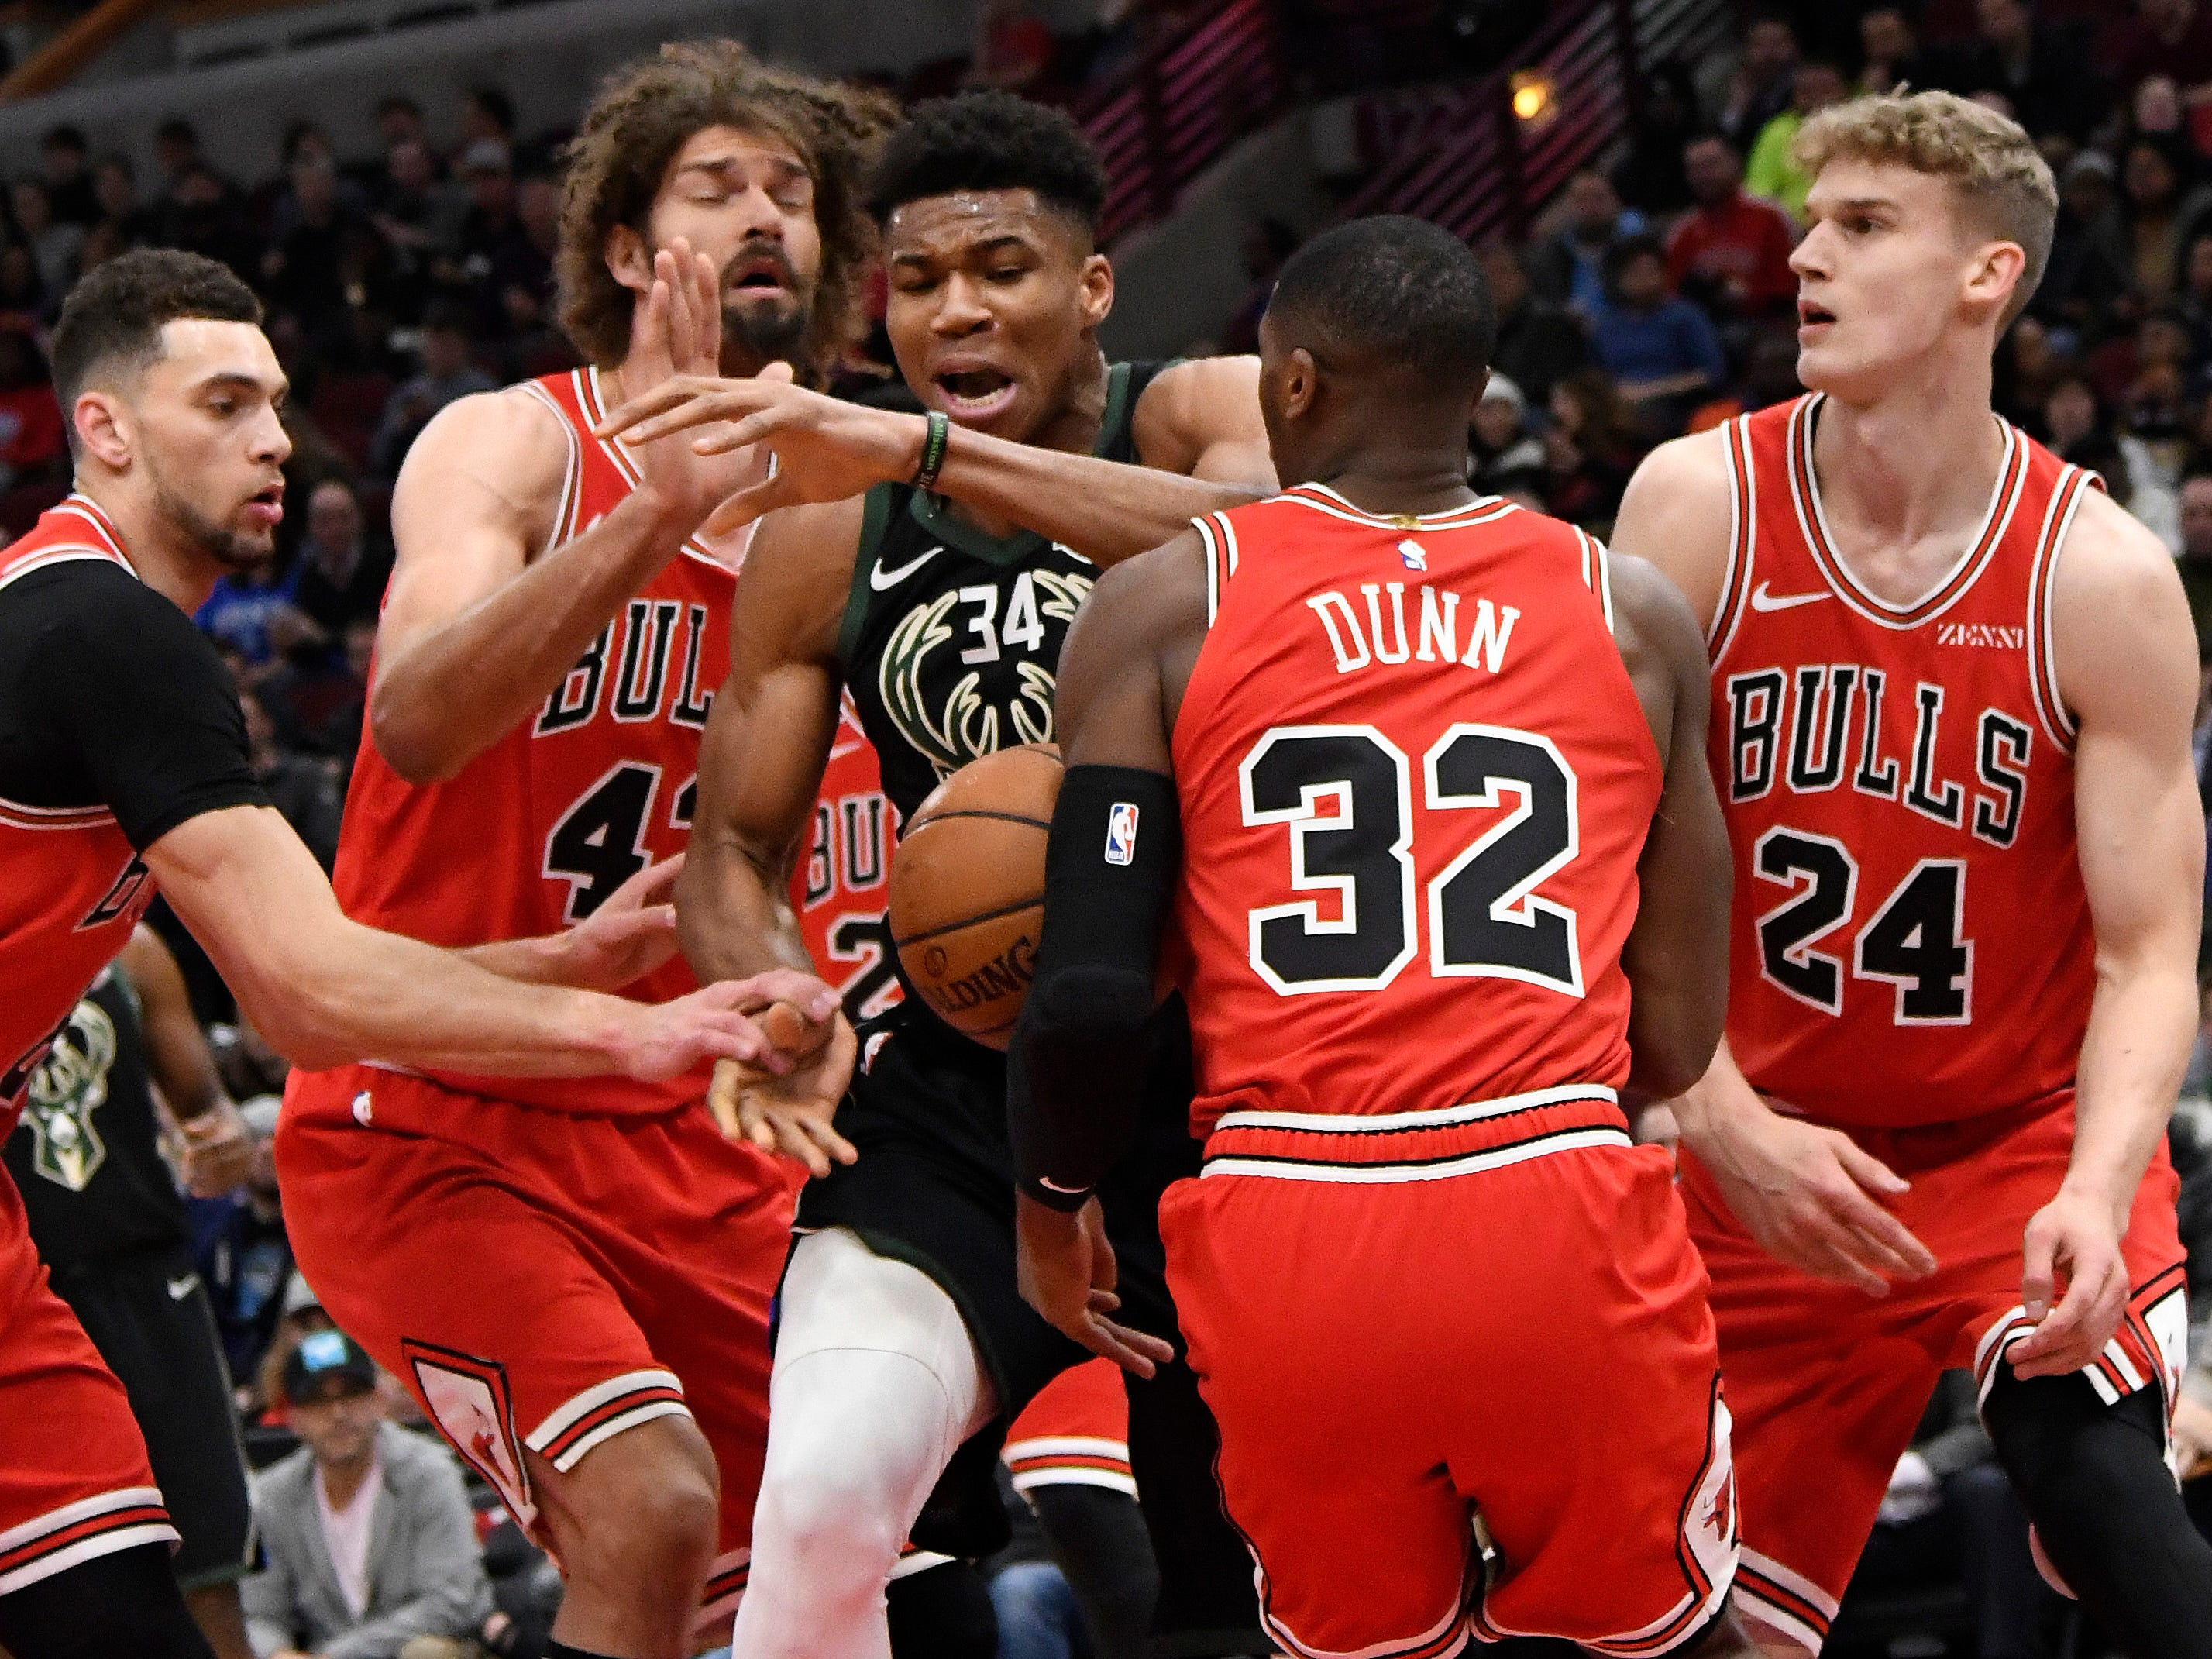 Bucks forward Giannis Antetokounmpo loses the ball as he's surrounded by a quartet of Bulls defenders during teh first half Monday.